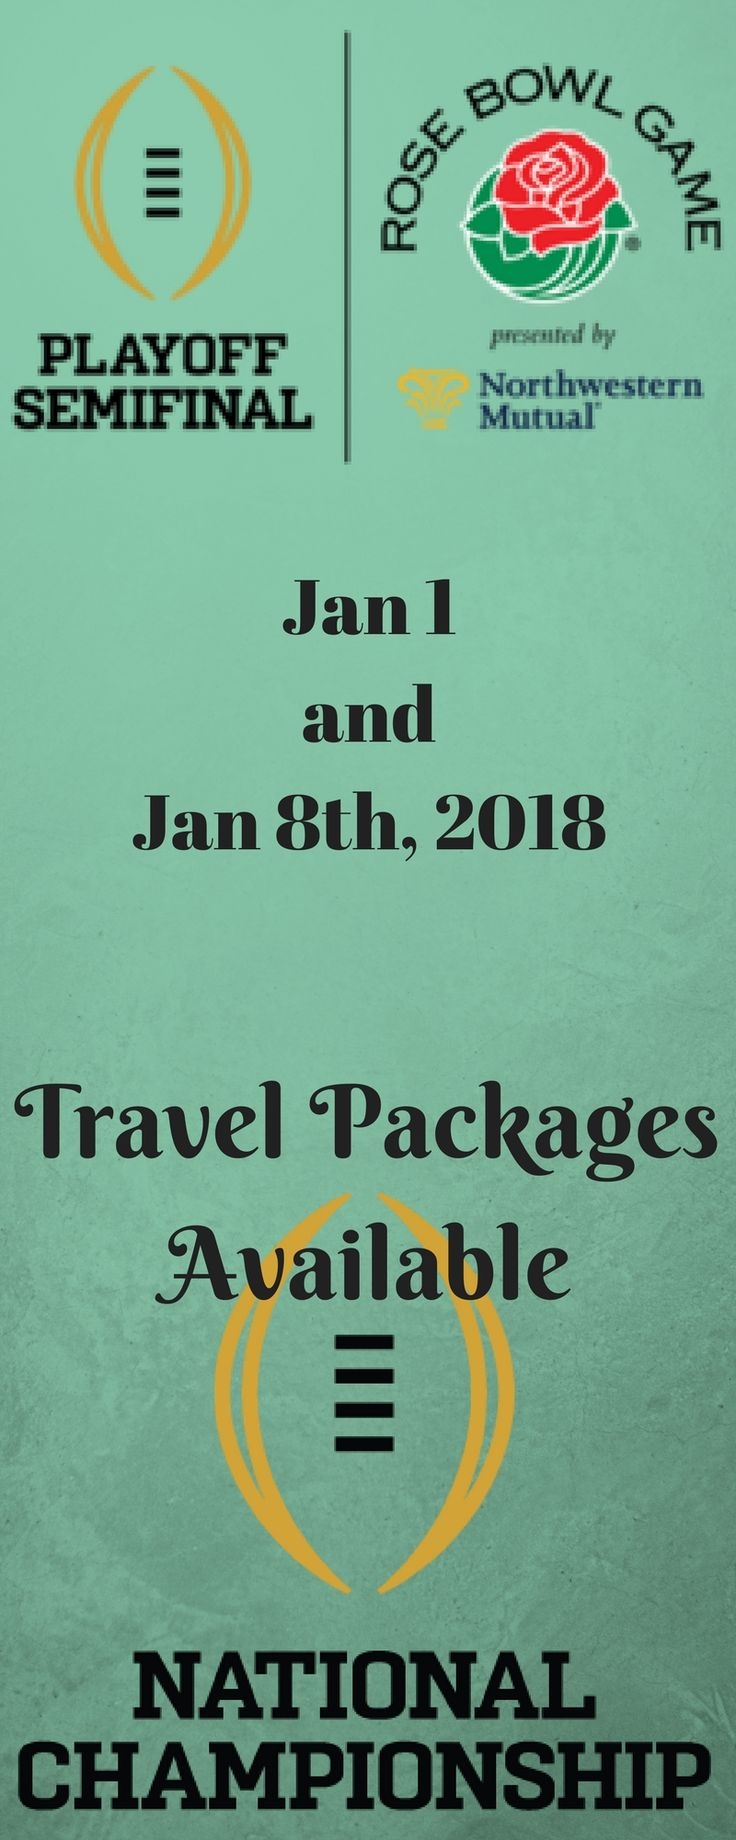 College Football National Championship. Travel packages now available.